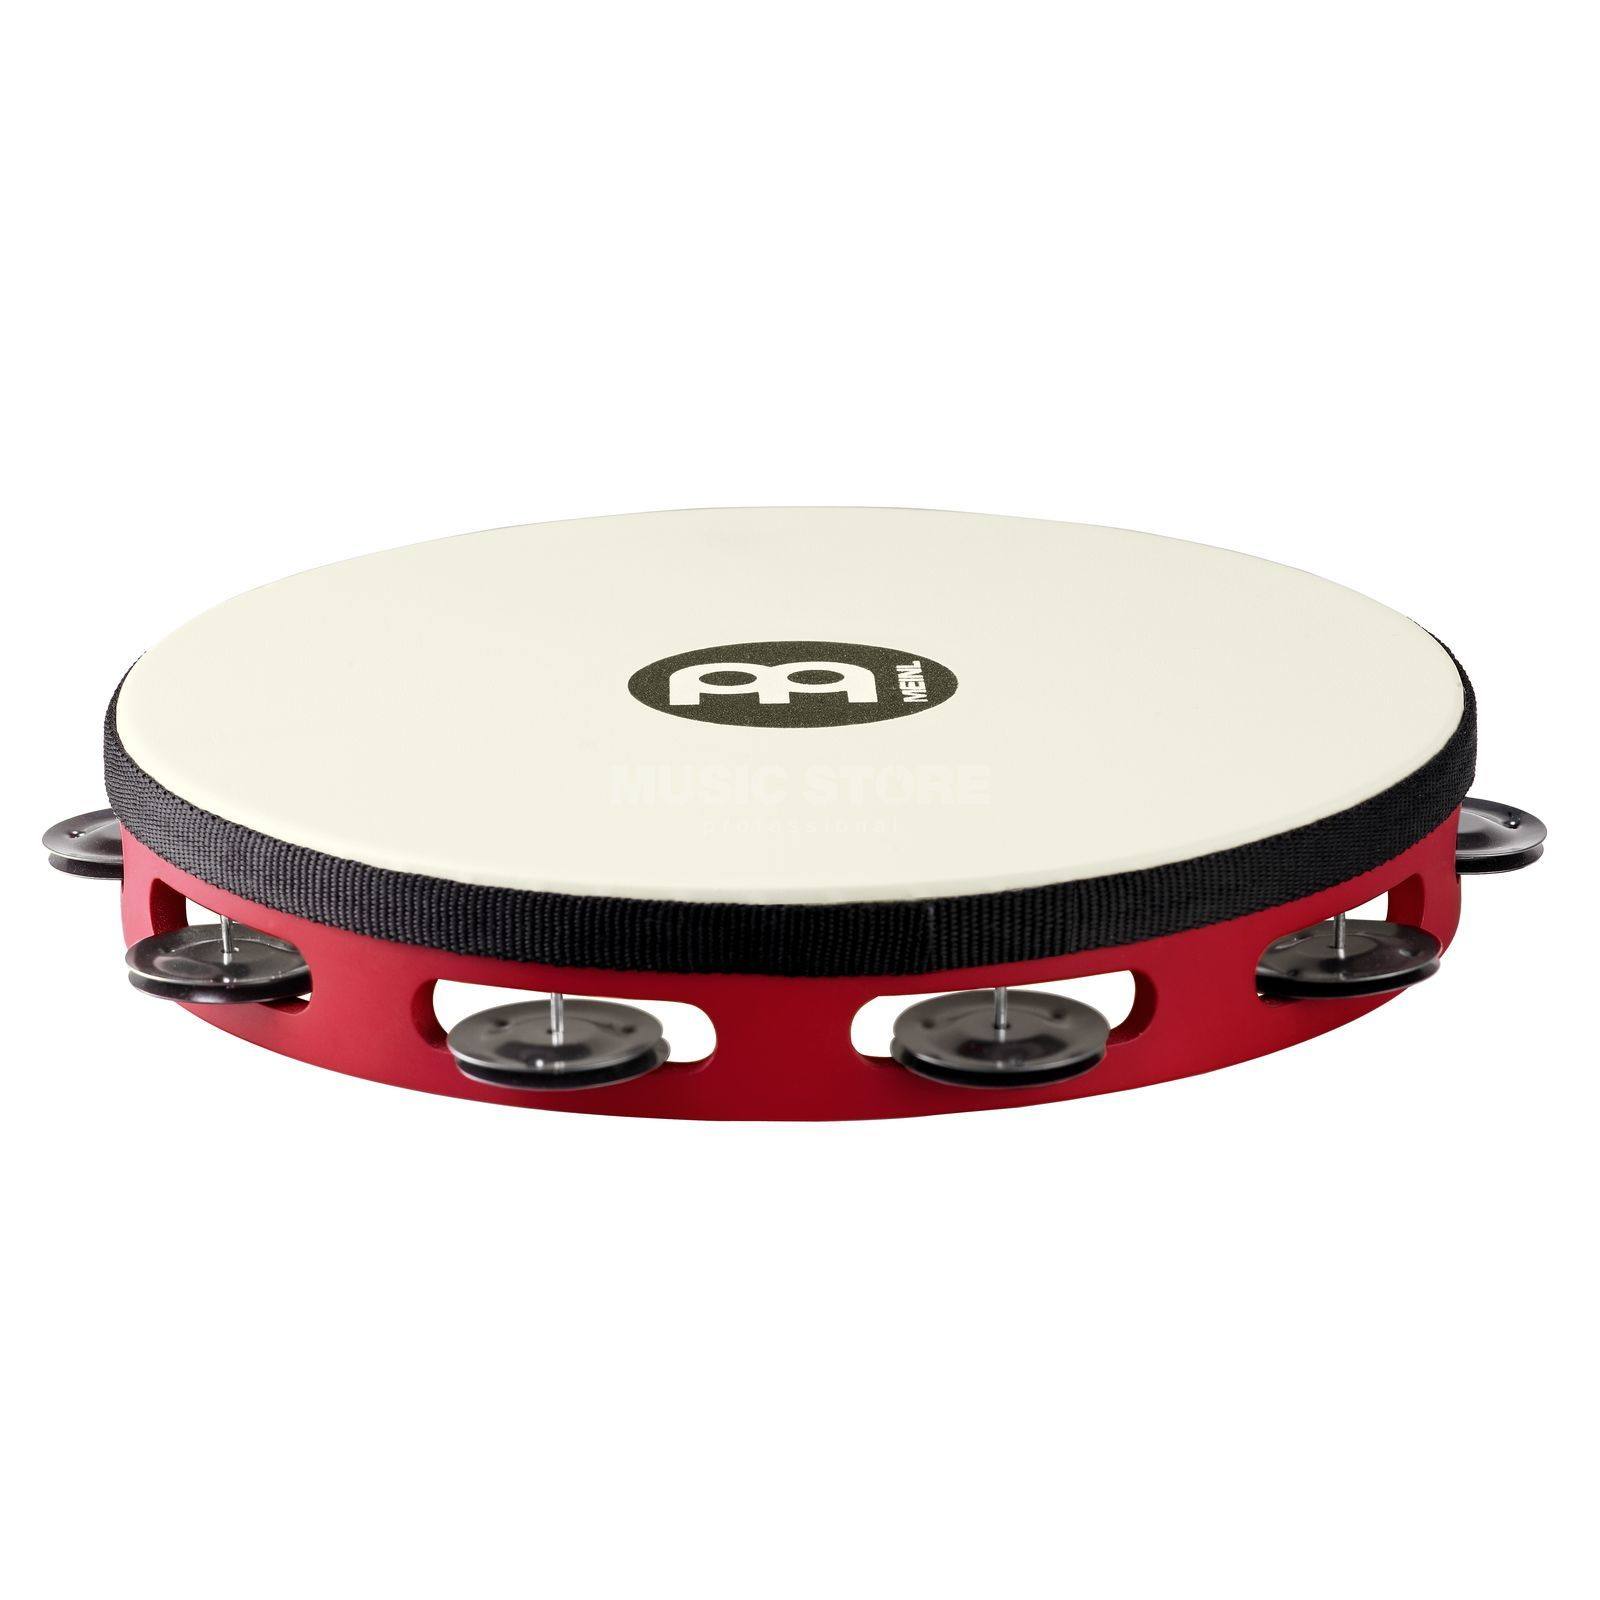 Meinl Touring Tambourine TAH1BK-R-TF Single Row, Steel, Red #R Produktbild